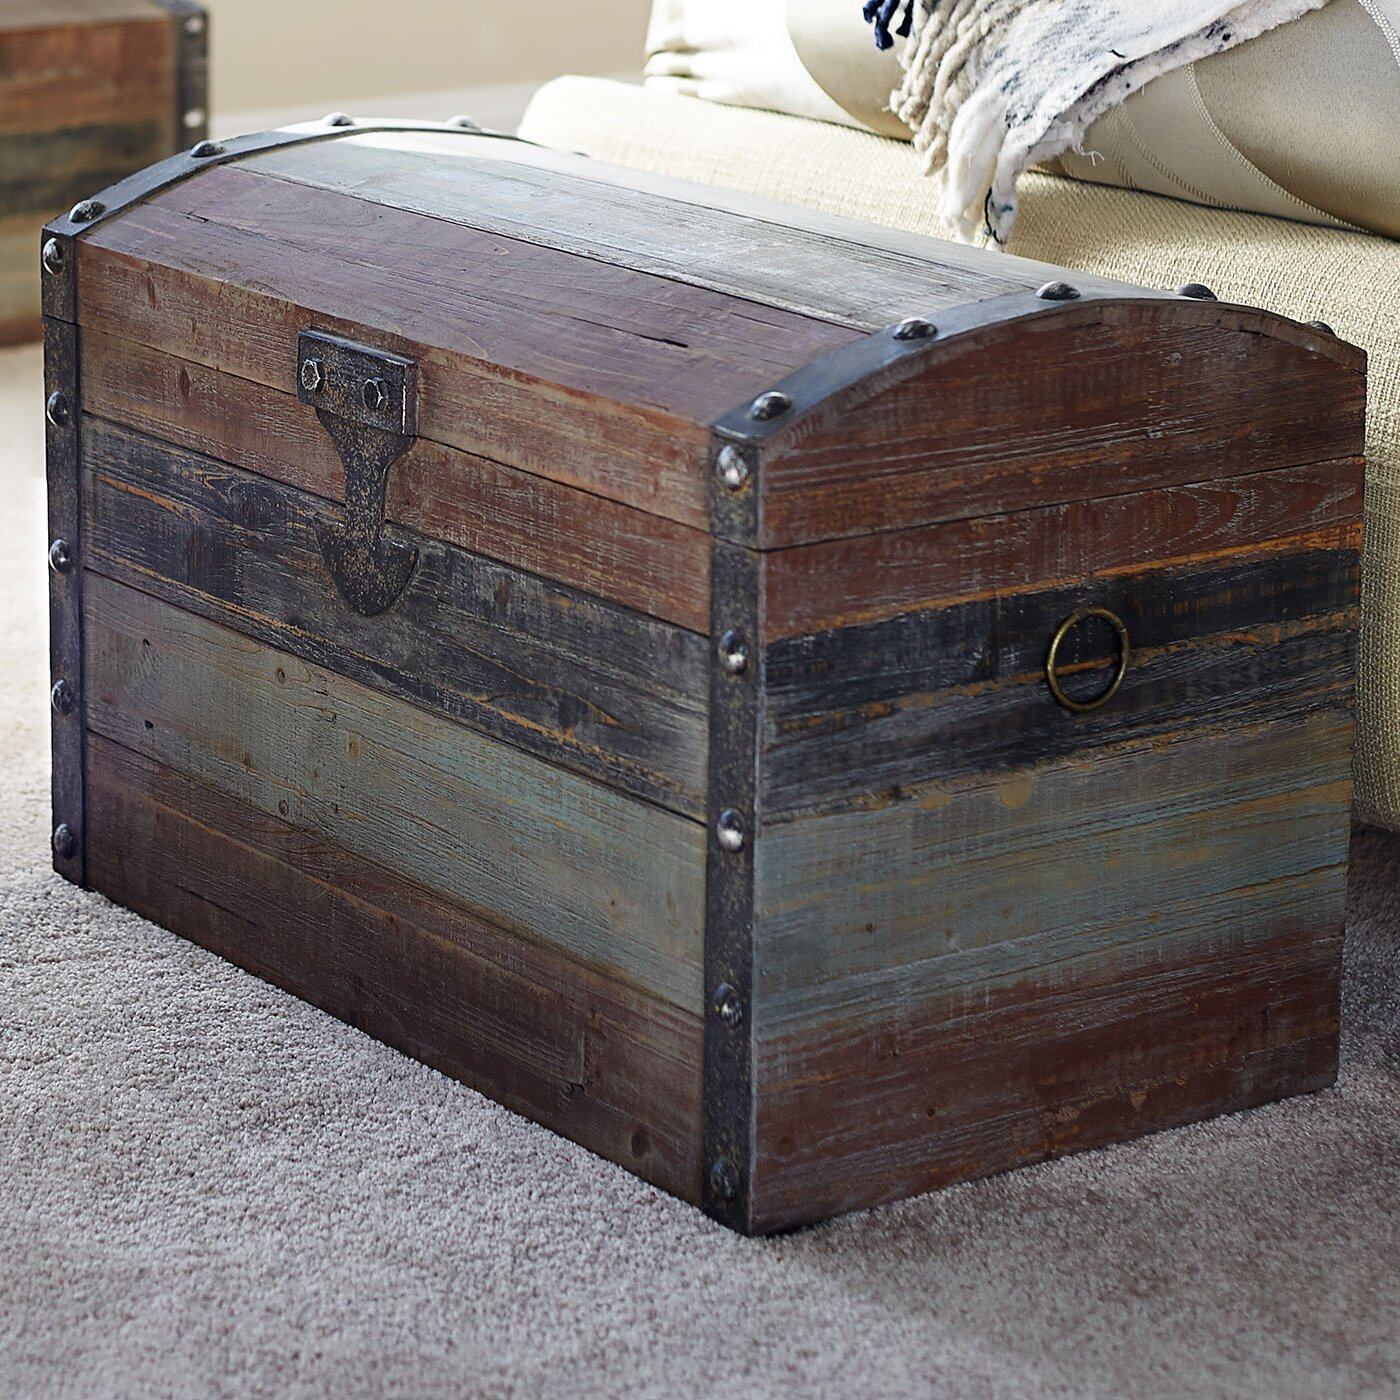 Make storage simple and stylish with the Sterling Industries Kurman Wood Chest. This handy and striking chest includes 2 drawers and 2 cabinets that provide plenty of storage space. This is a great way to store silverware, photos, toys, and more.